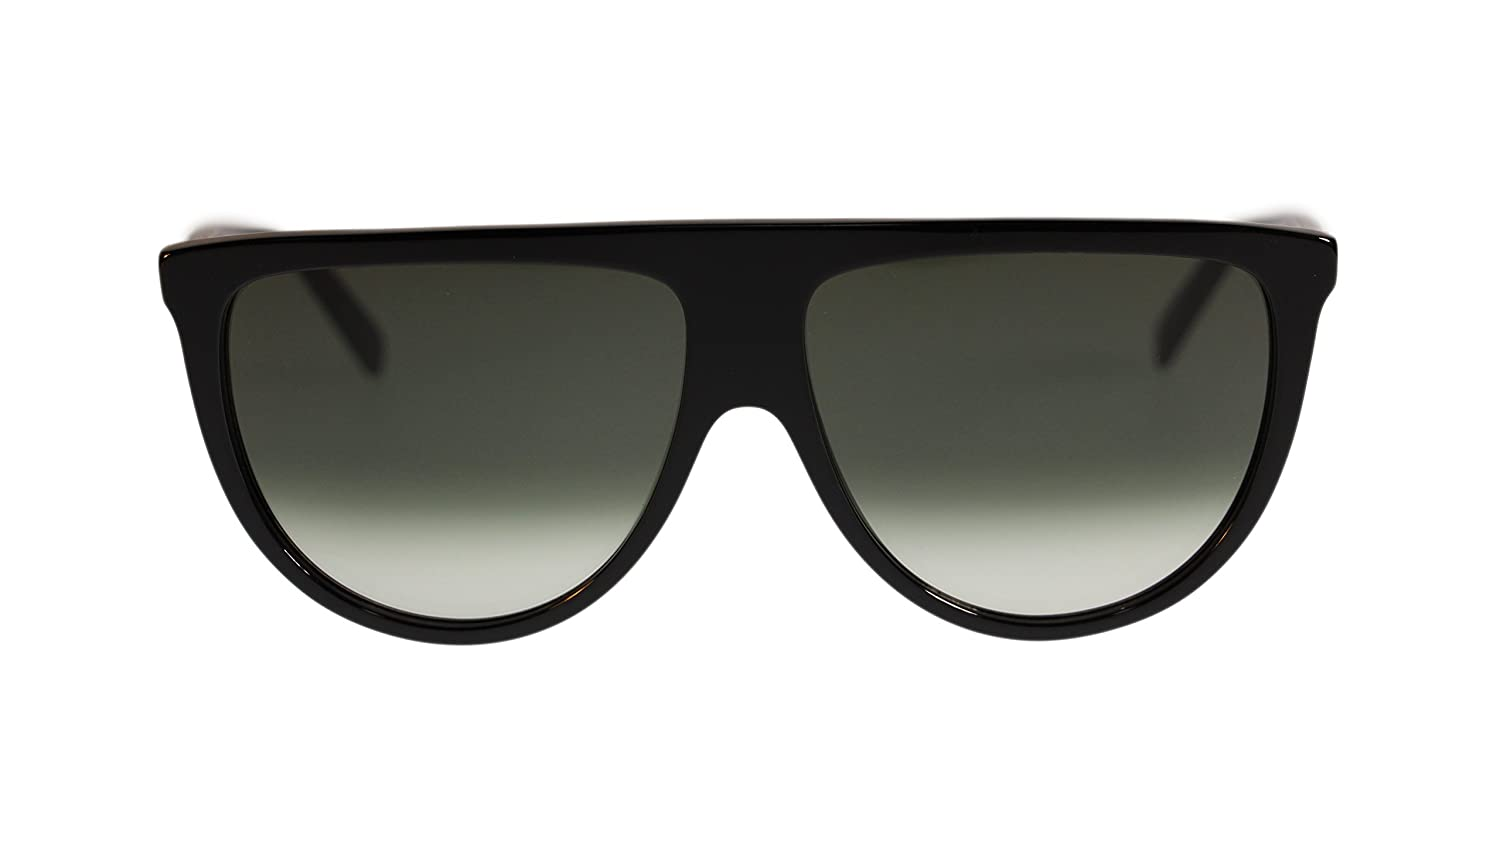 c27e51ba2e14 Celine Thin Shadow Womens Sunglasses CL41435 807 Black Green Gradient Lens  Round  Amazon.co.uk  Clothing